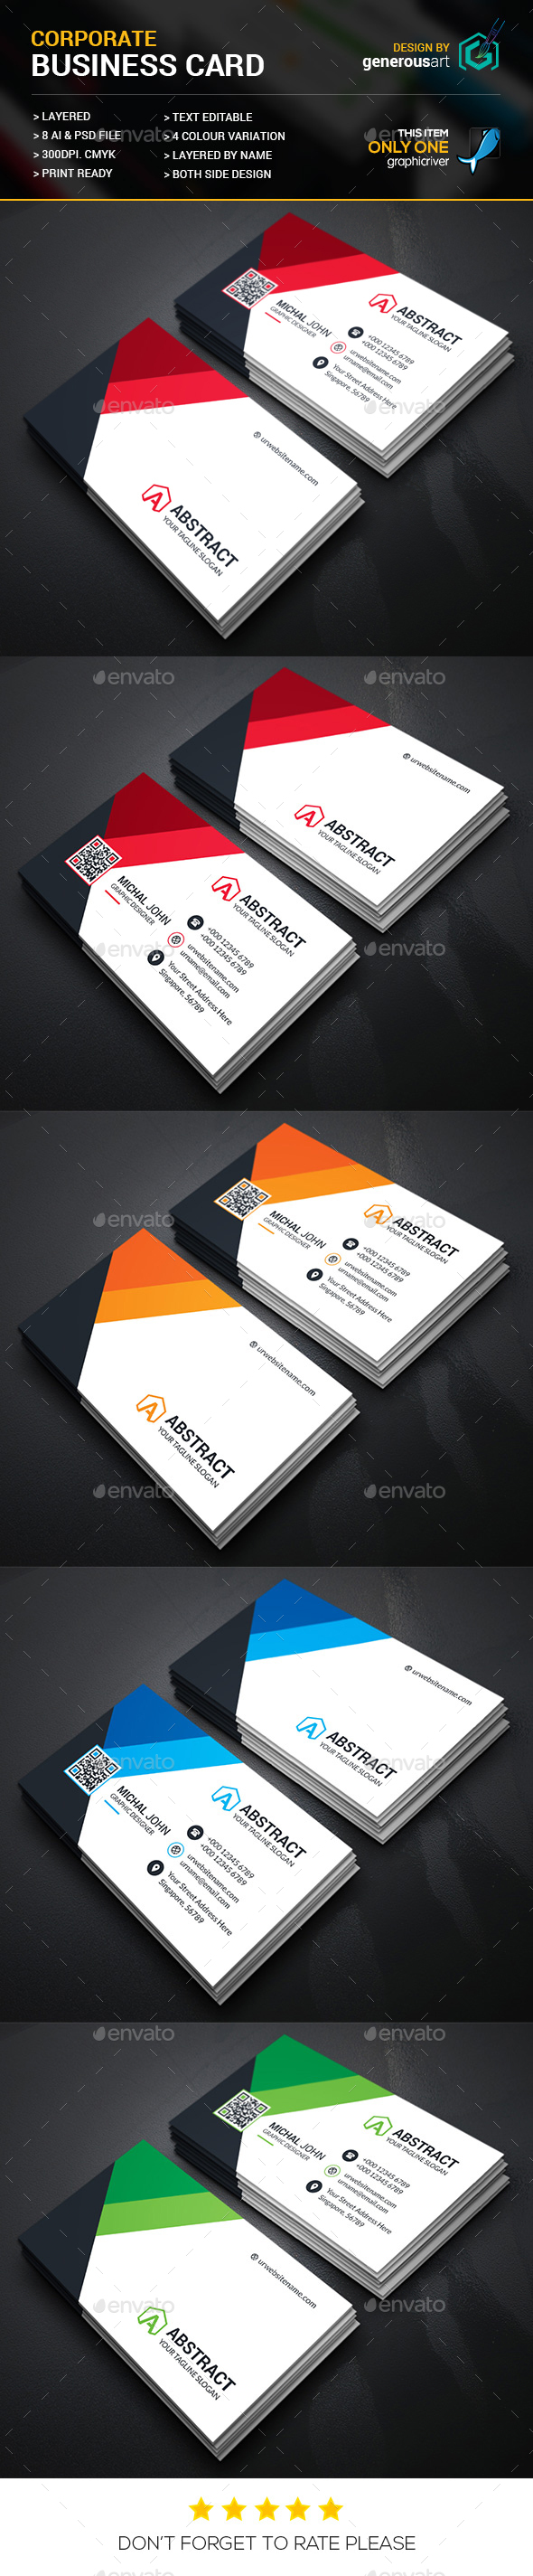 New Corporate Business Card - Corporate Business Cards